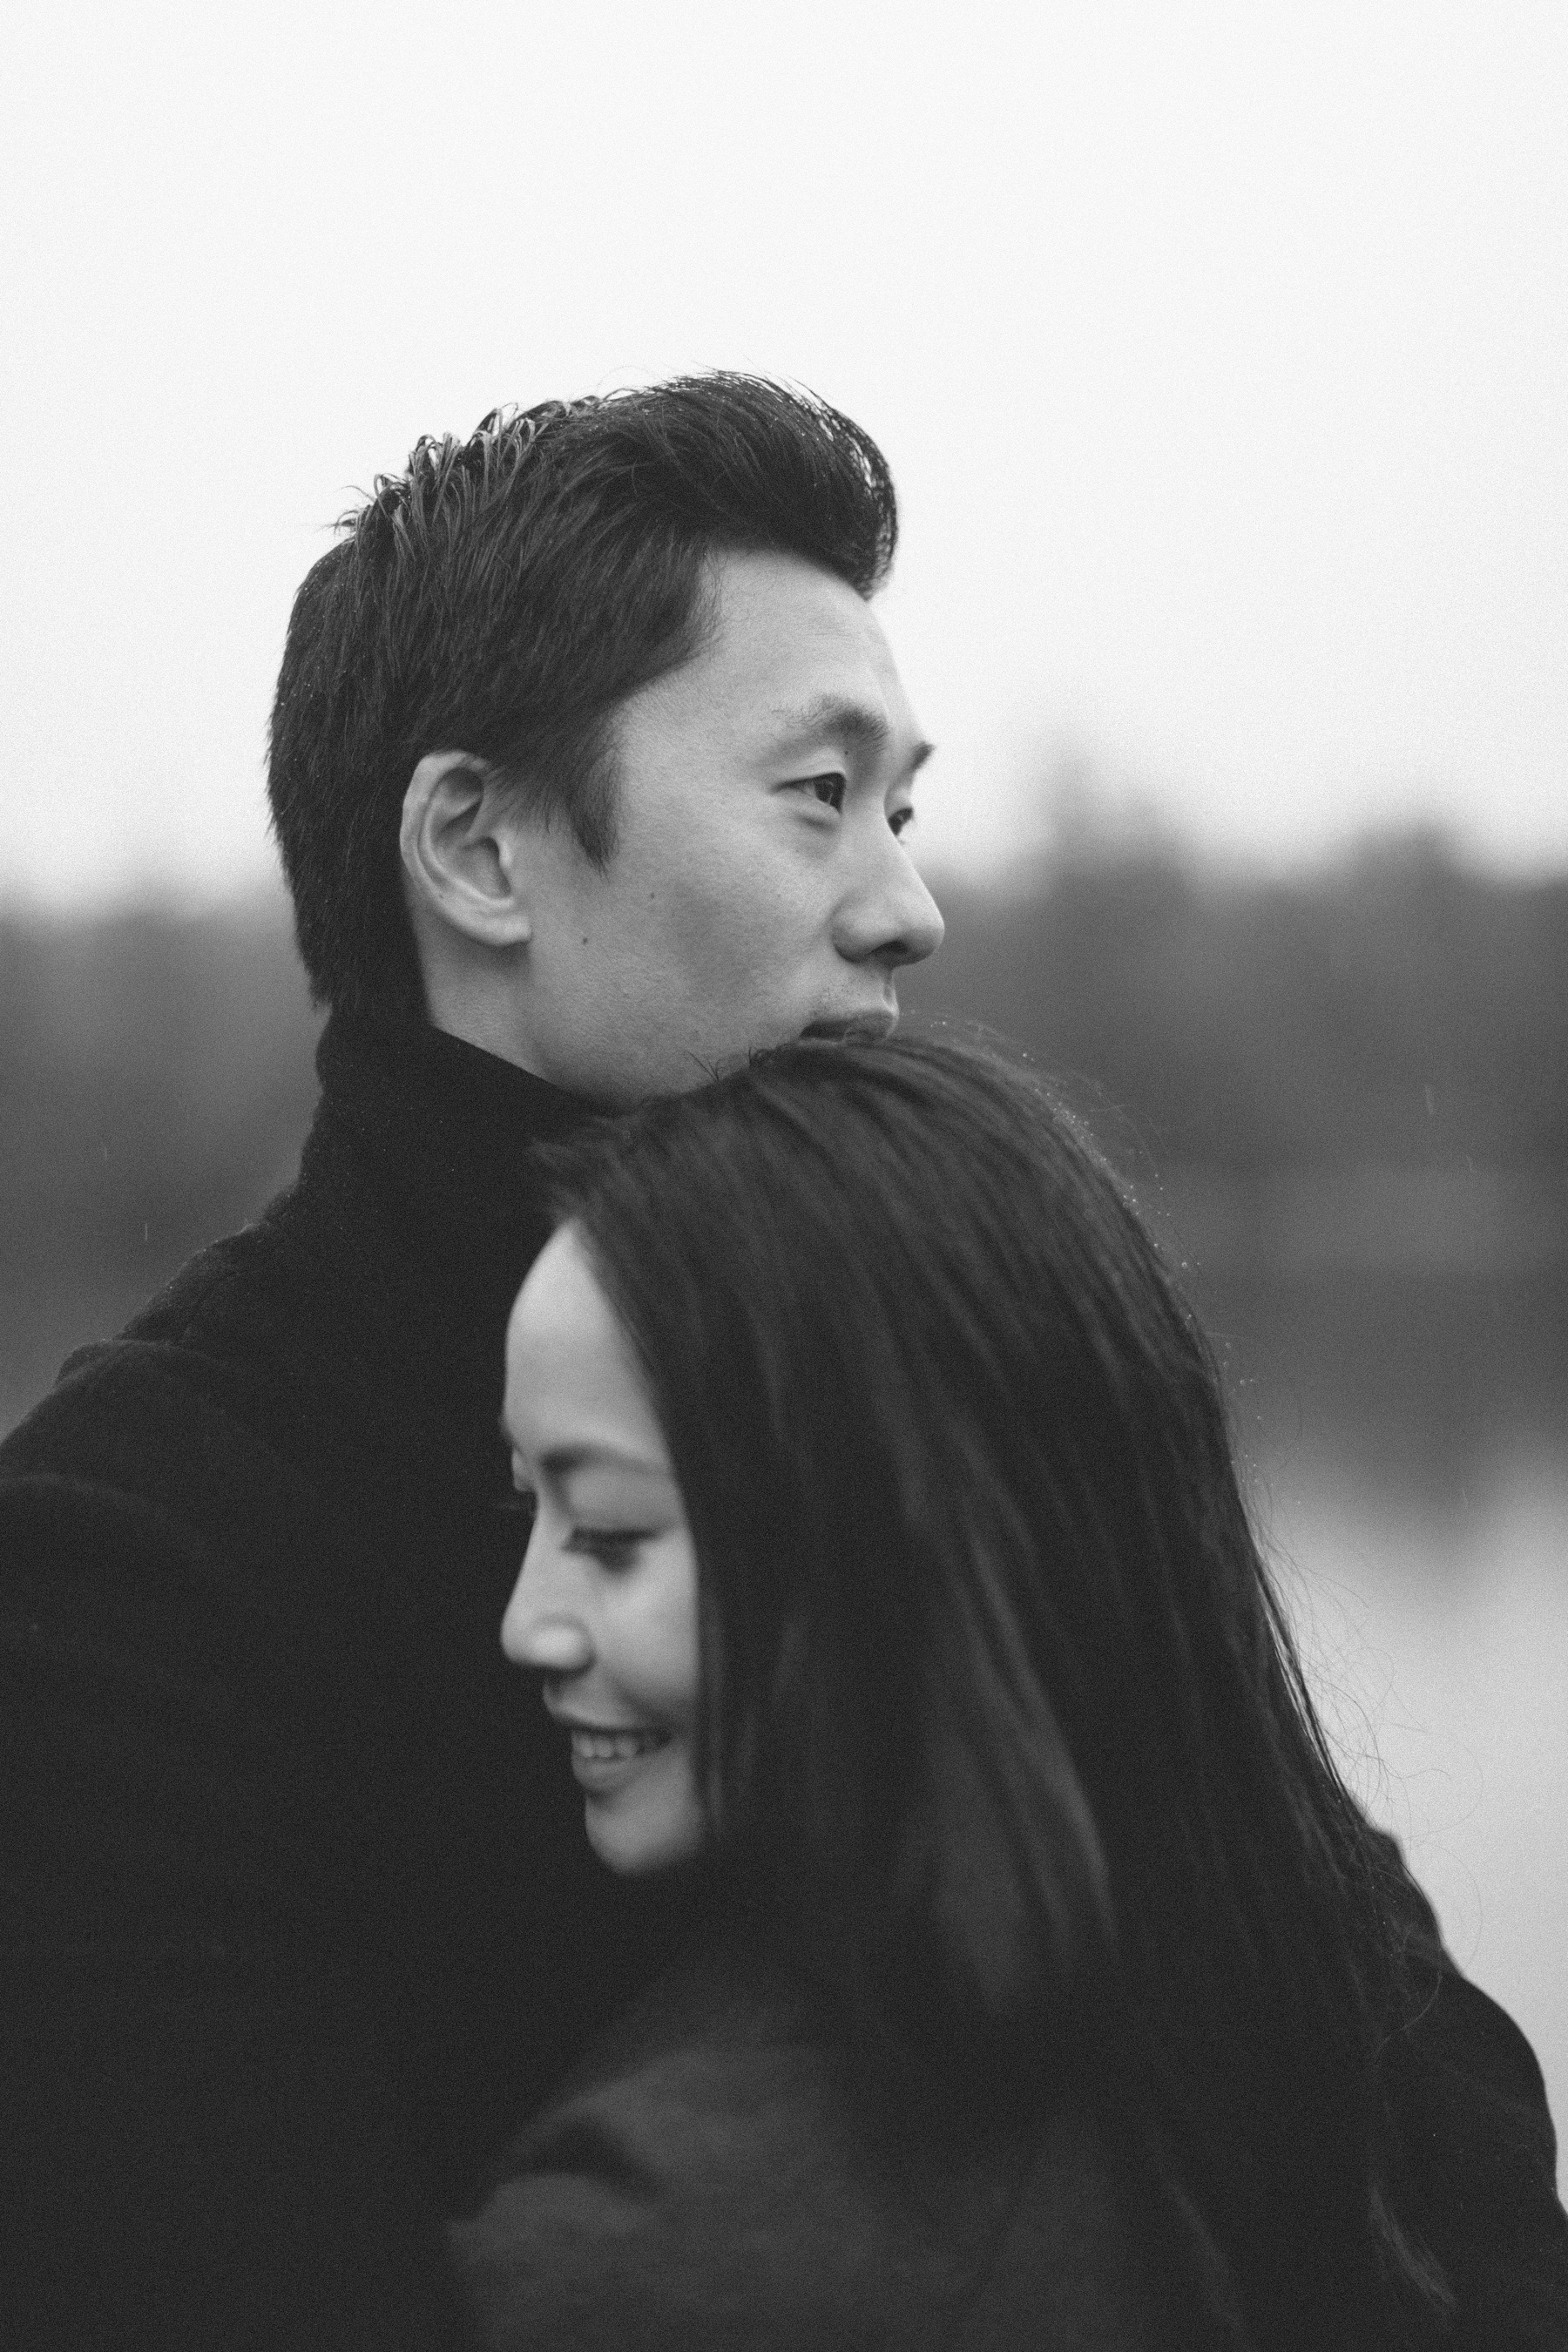 Rainy_Day_Engagement_Photos_Toronto_Wedding_Photographer_Melissa_Sung_Photography_0010.jpg